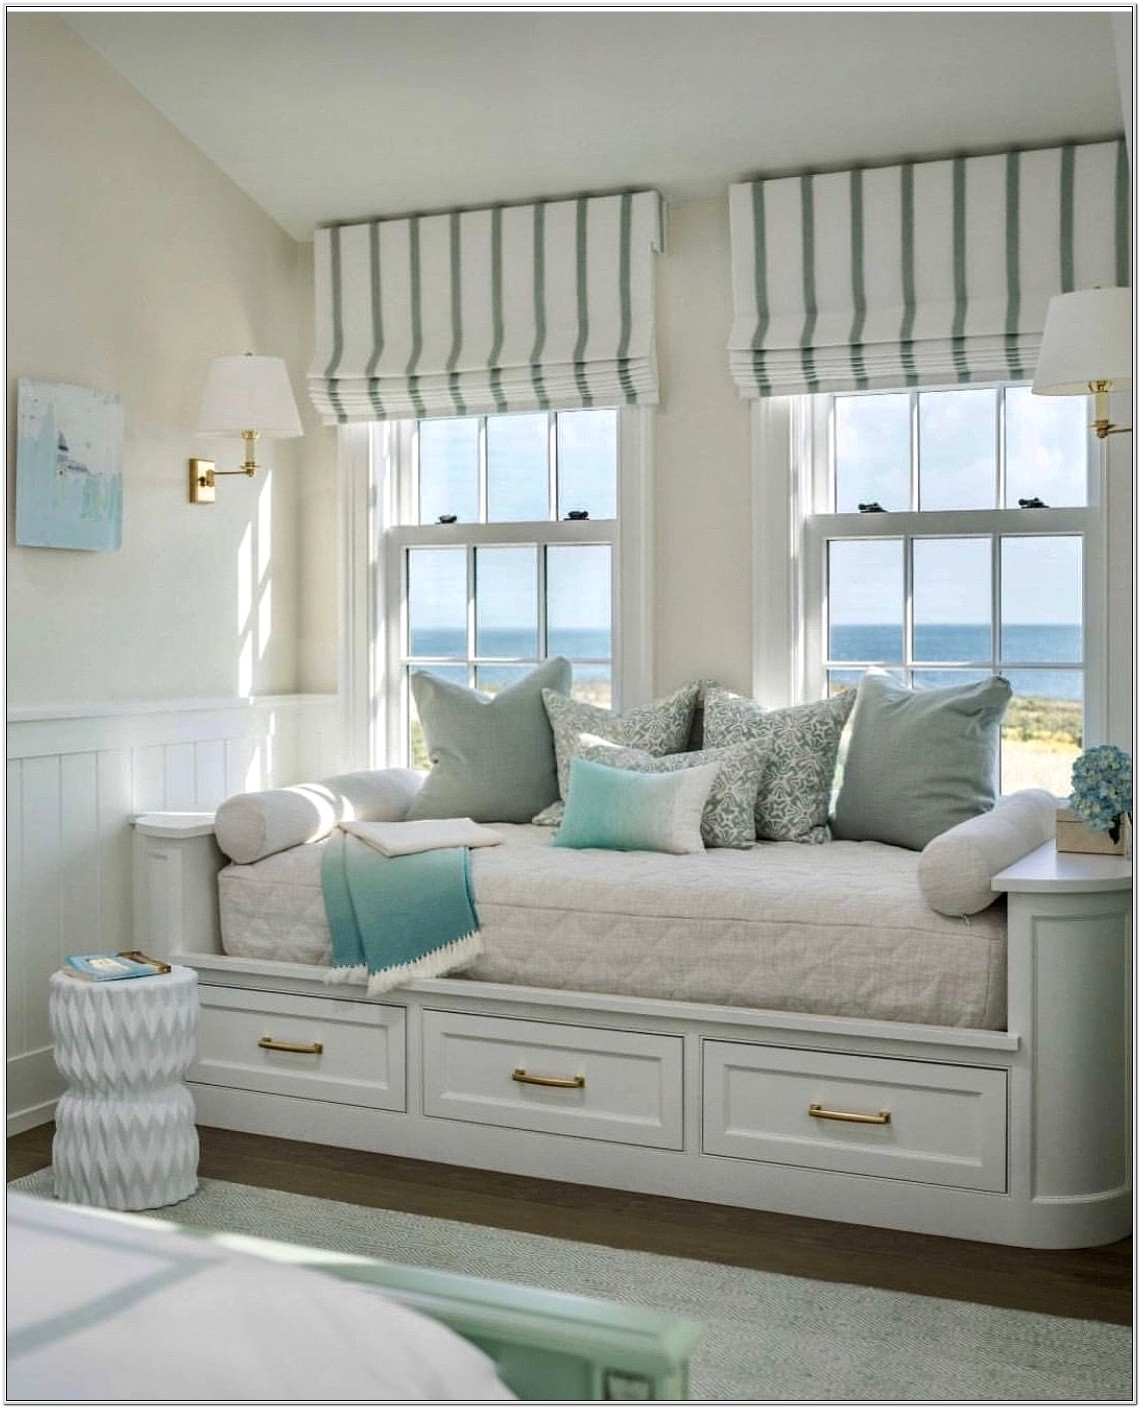 Homemade Nantucket Bedroom Decor